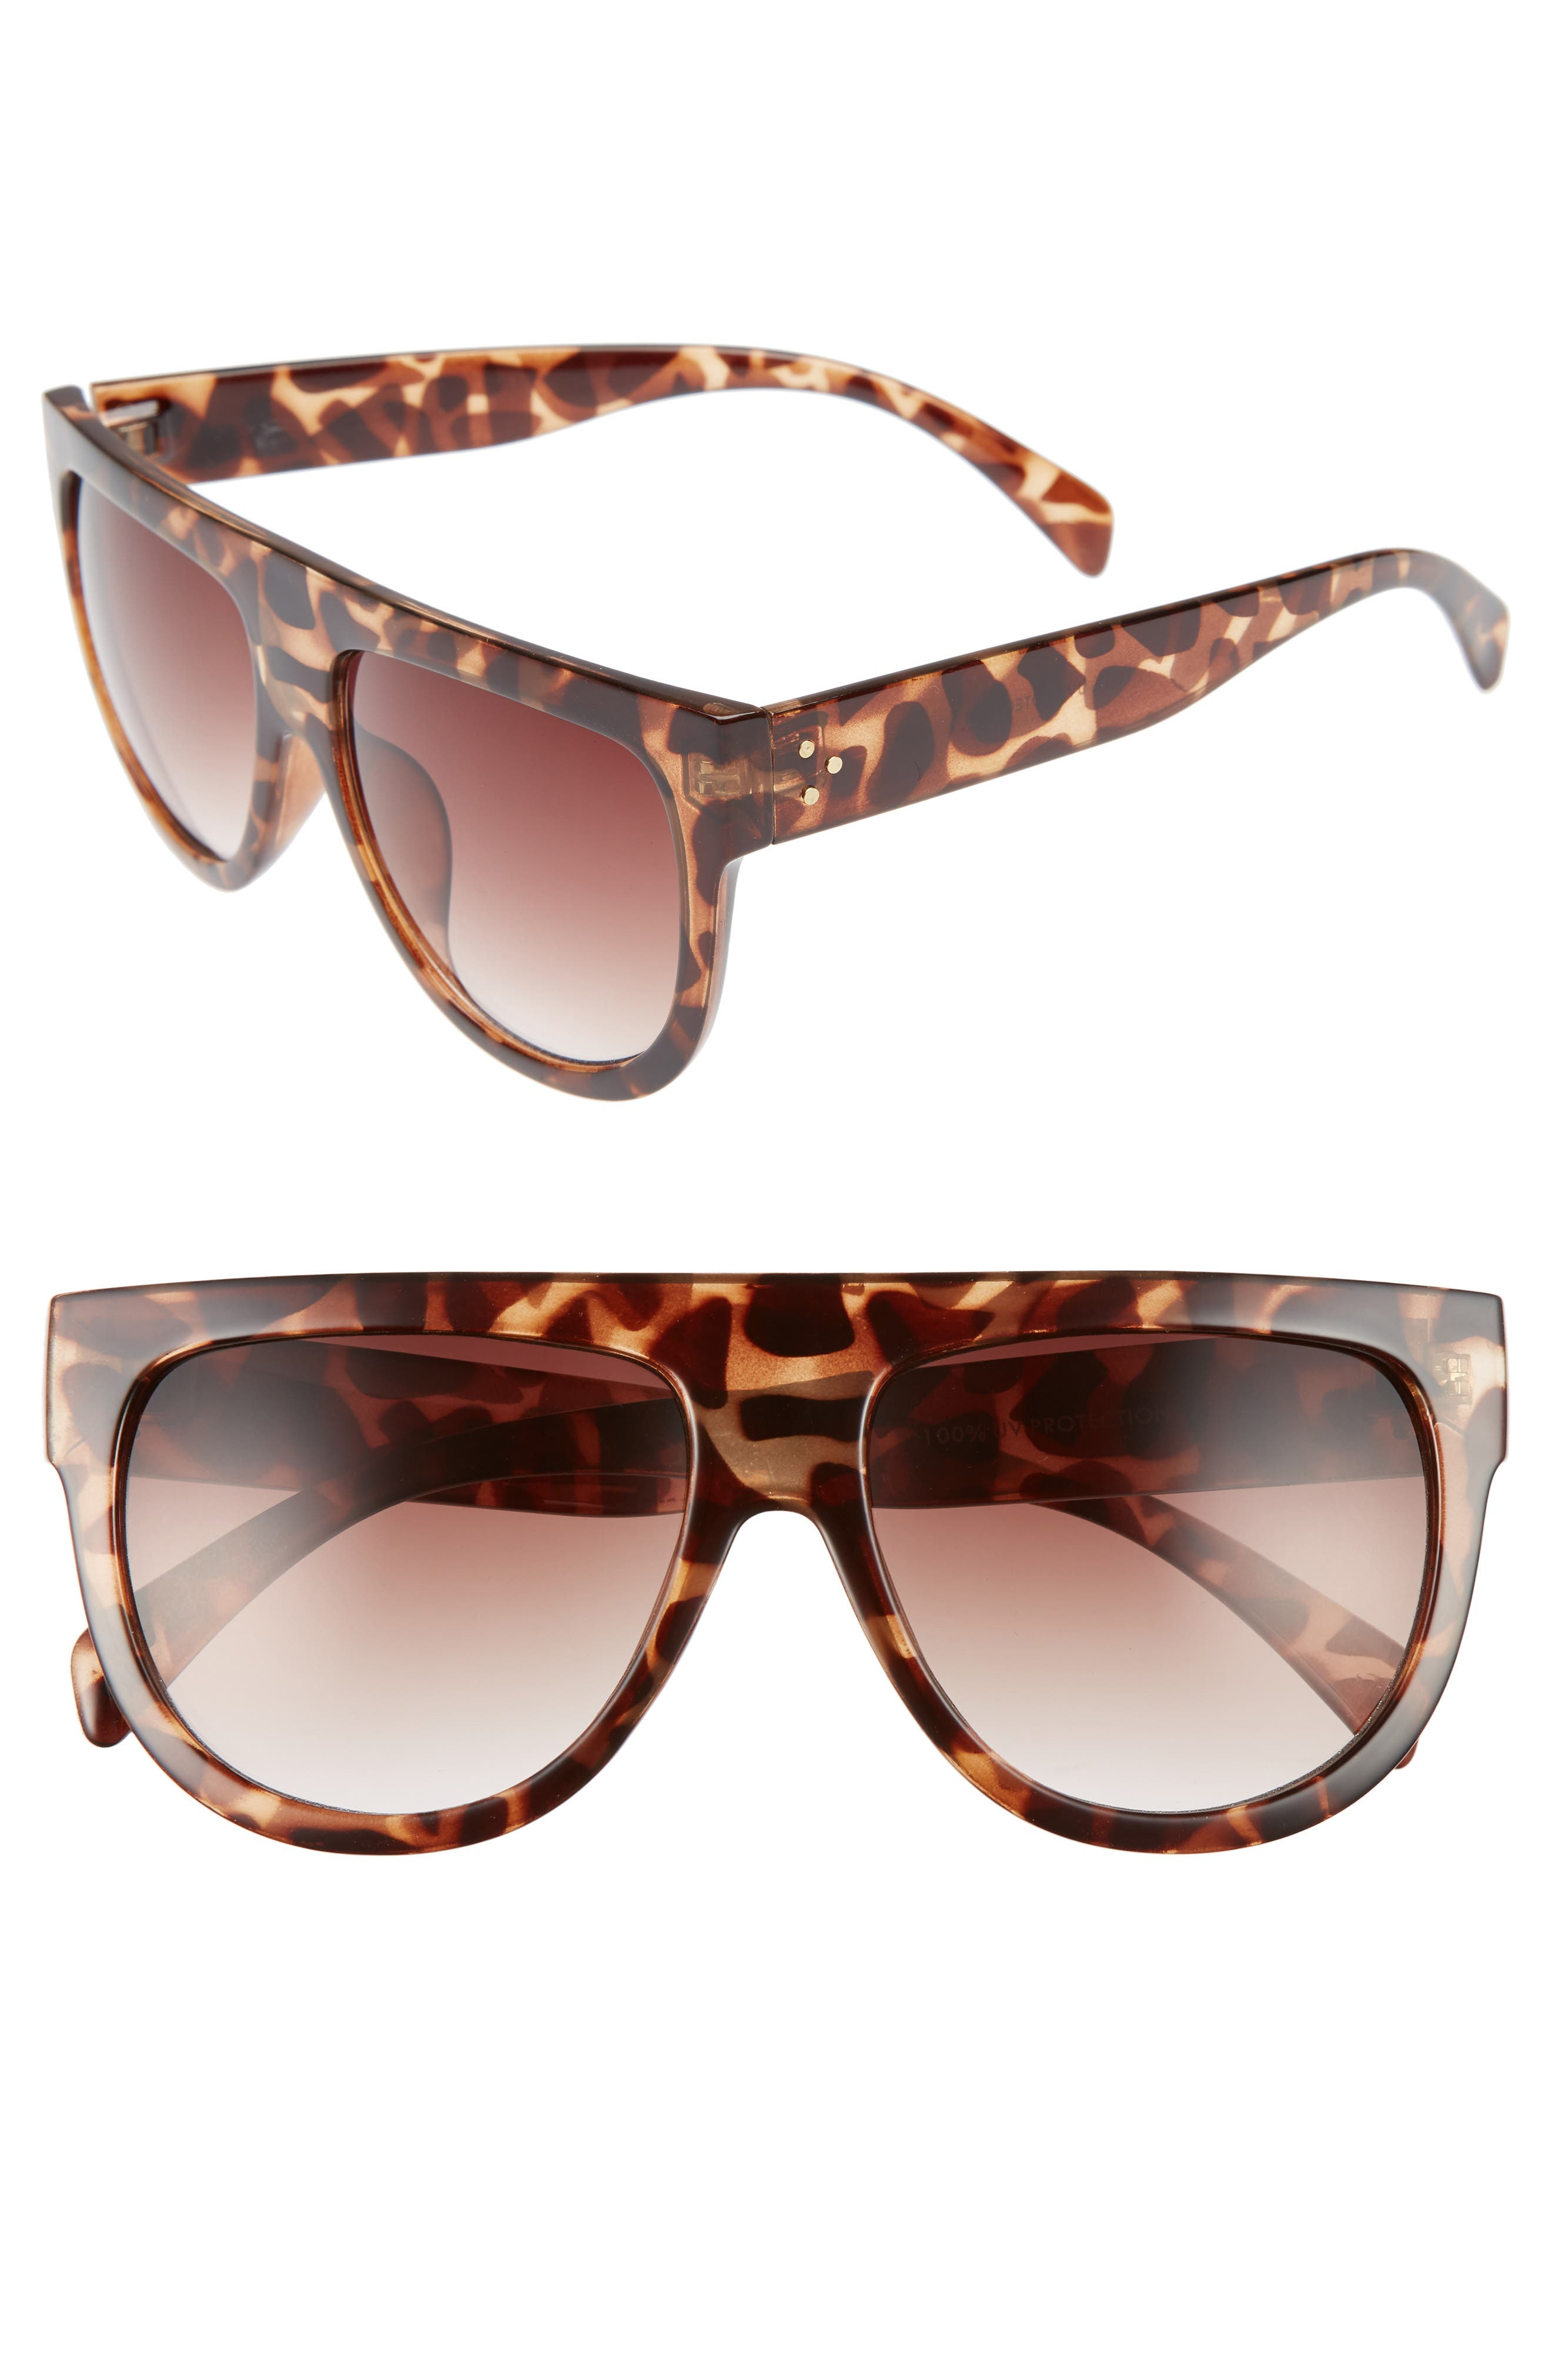 Main Image - BP. Lunette 40mm Shield Sunglasses